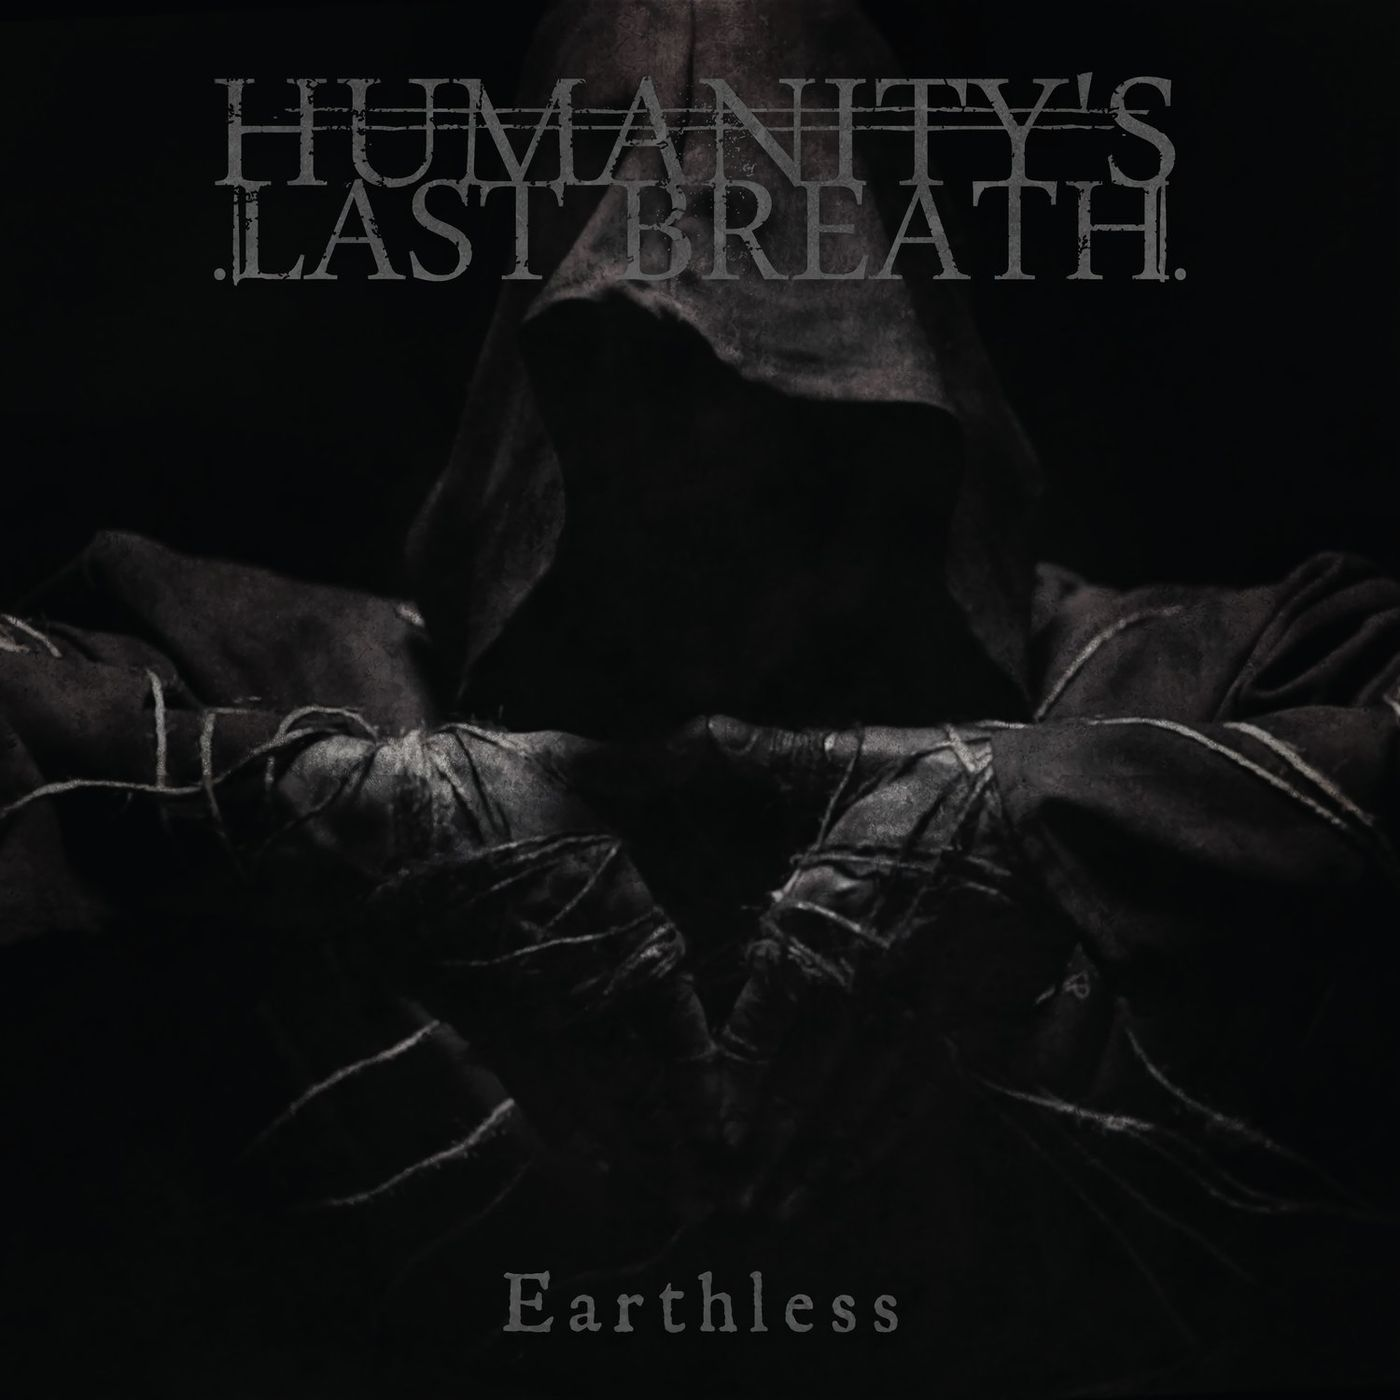 Humanity's Last Breath - Earthless [single] (2020)